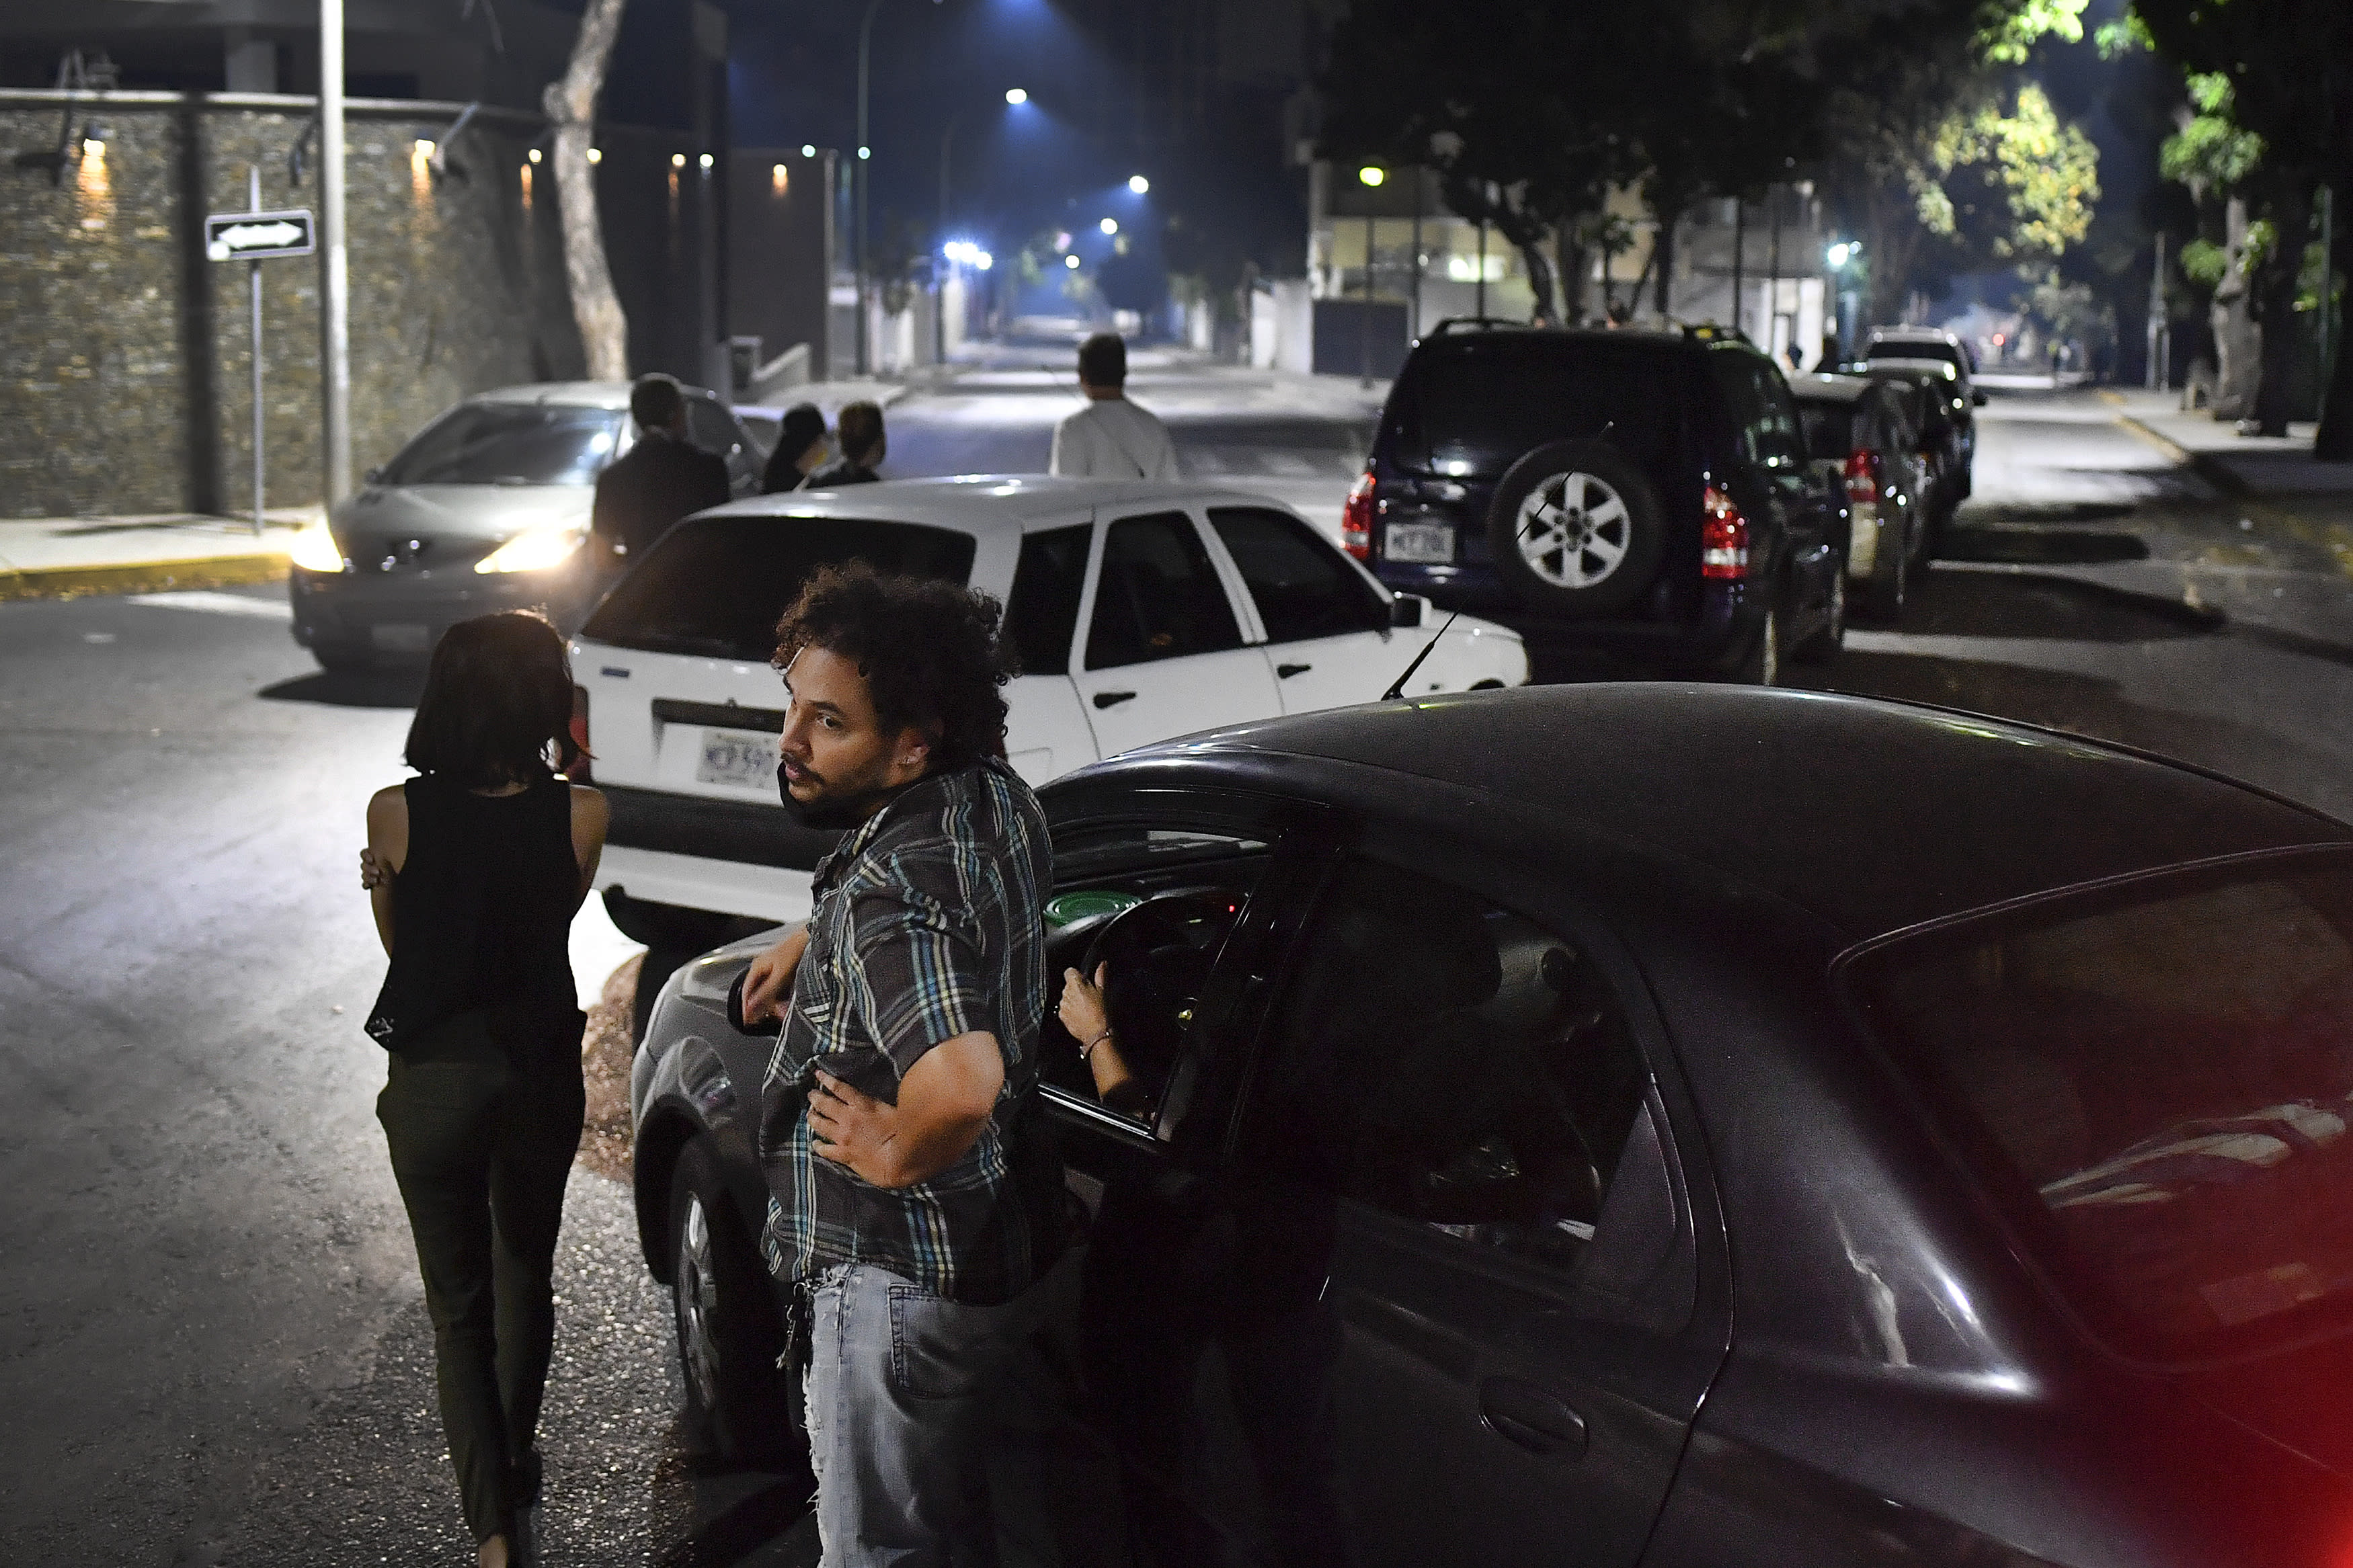 People stand close to their vehicles as they wait in line to fill up their vehicles with gasoline in Caracas, Venezuela, Saturday, April 11, 2020. Lines at gas stations around the country's capital looked getting longer Saturday. (AP Photo/Matias Delacroix)